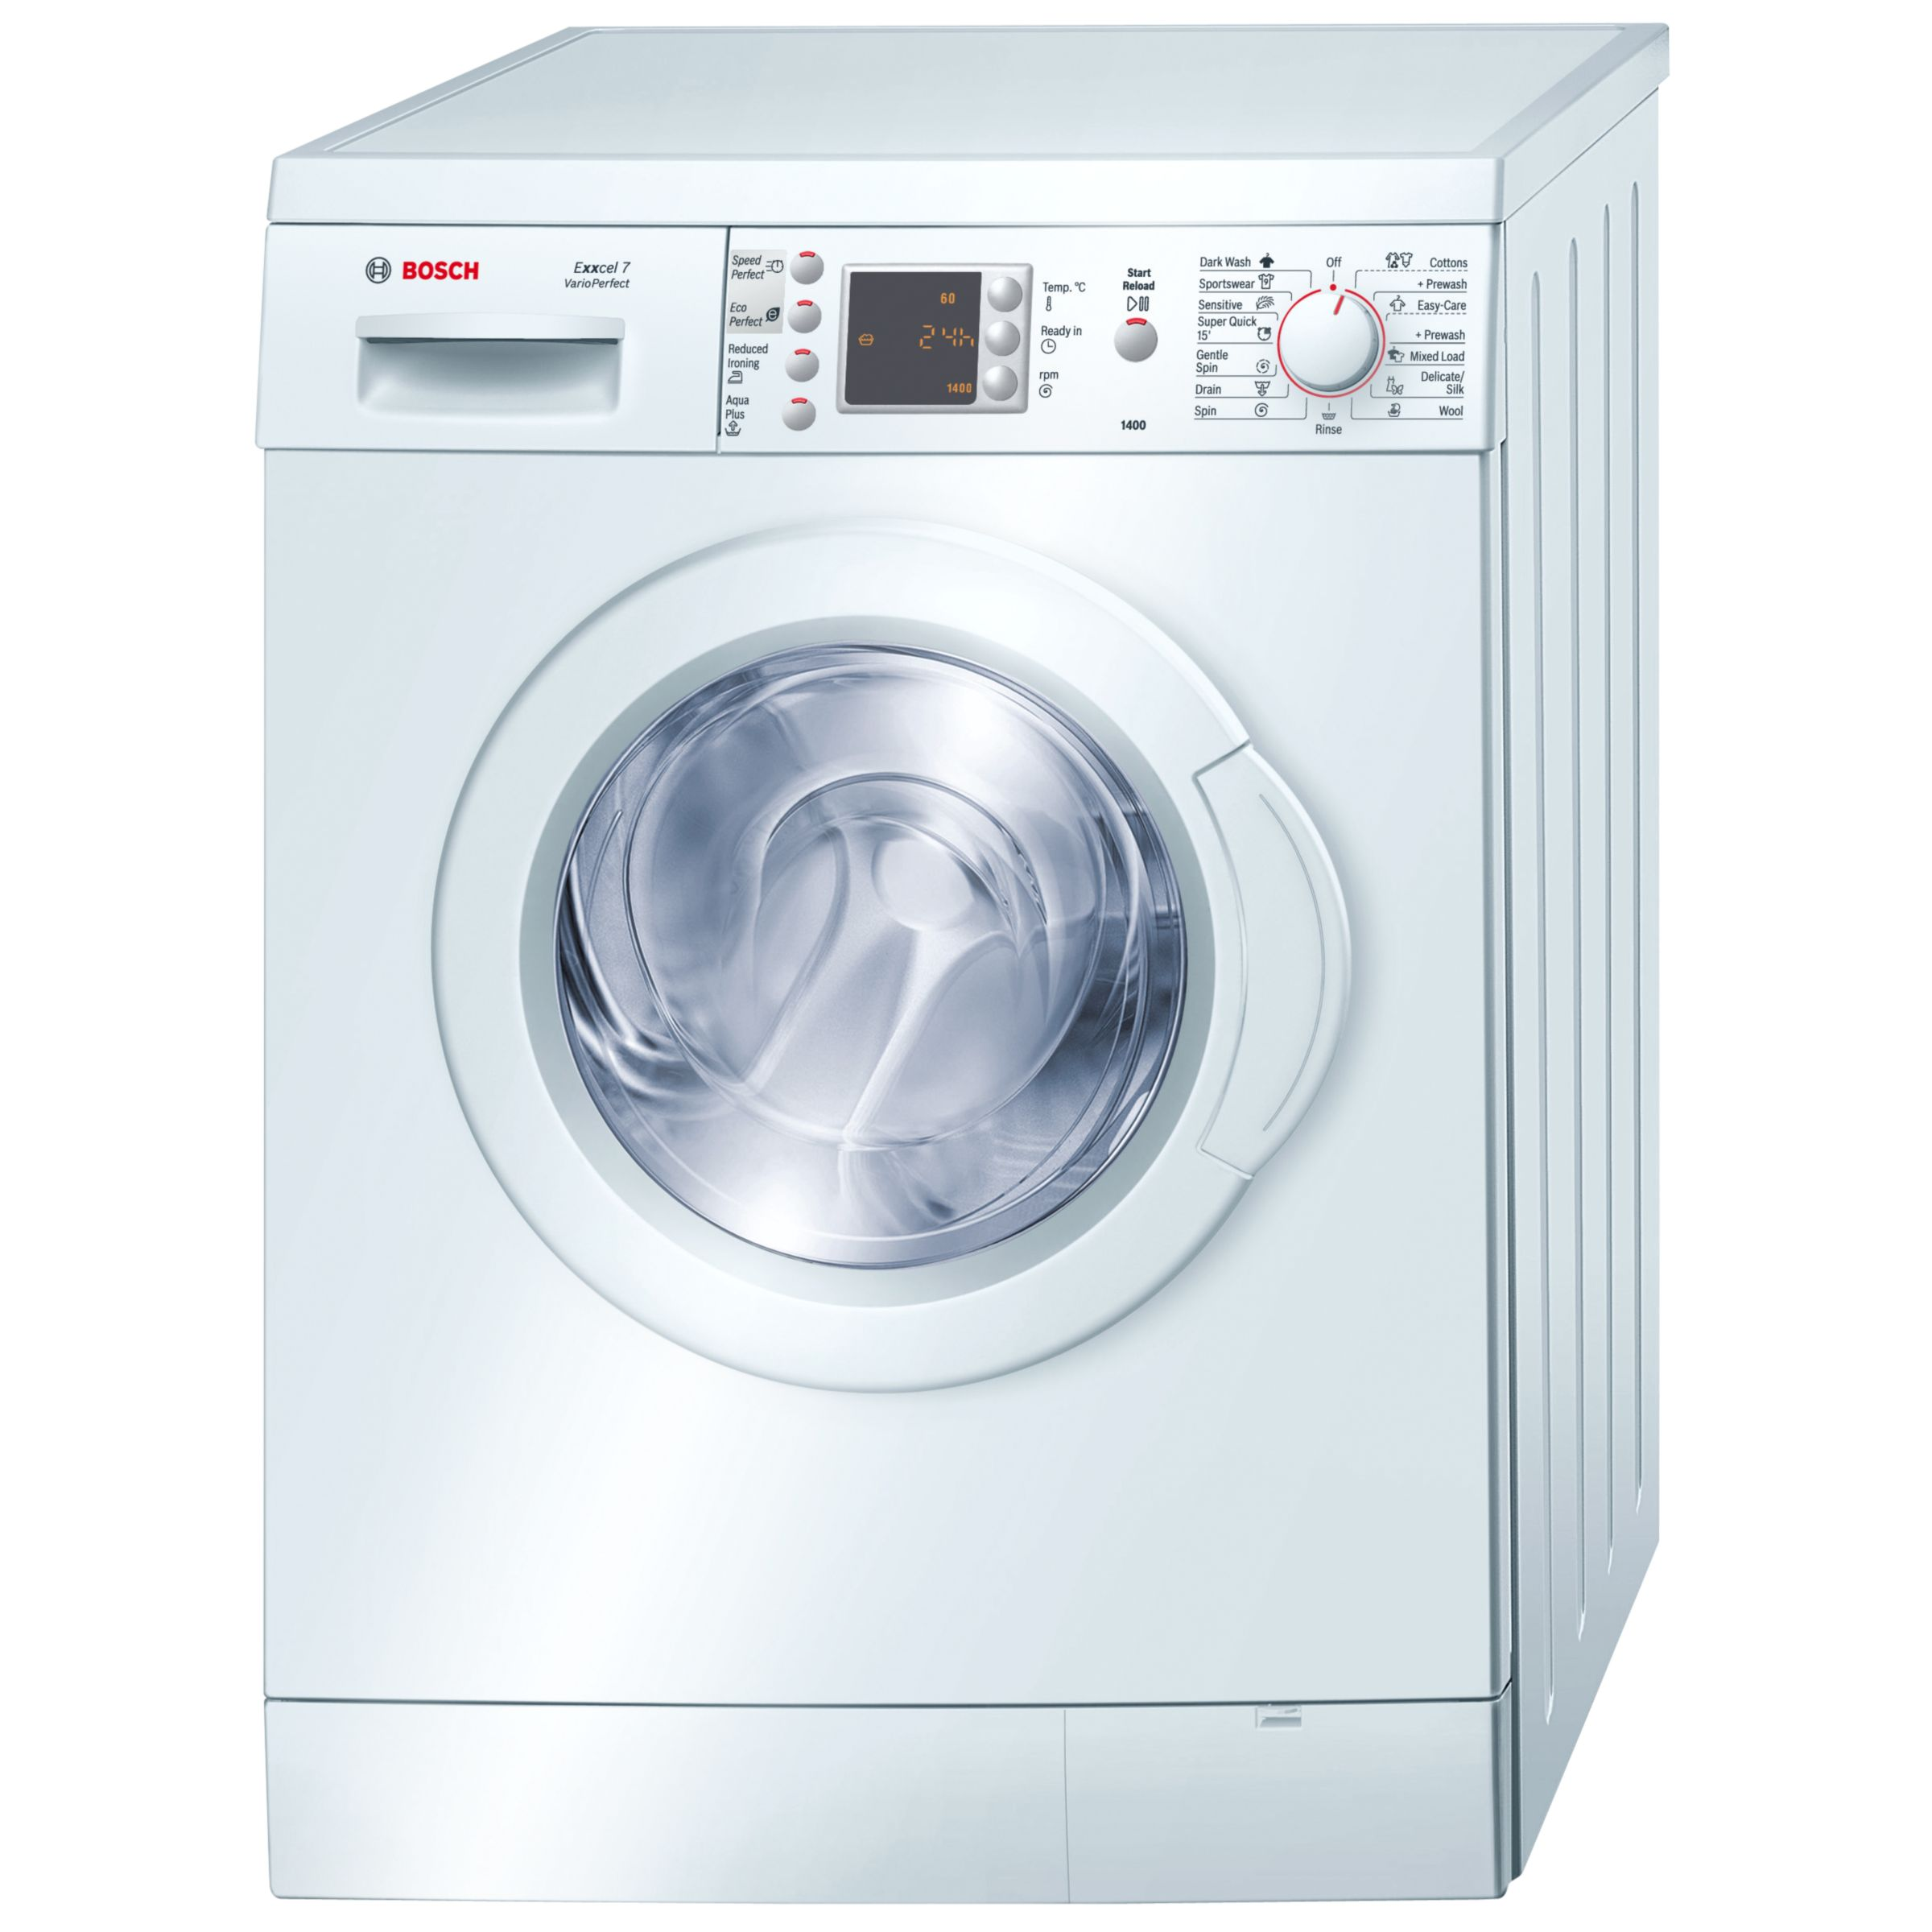 Bosch Exxcel WAE28469UK Washing Machine, White at John Lewis